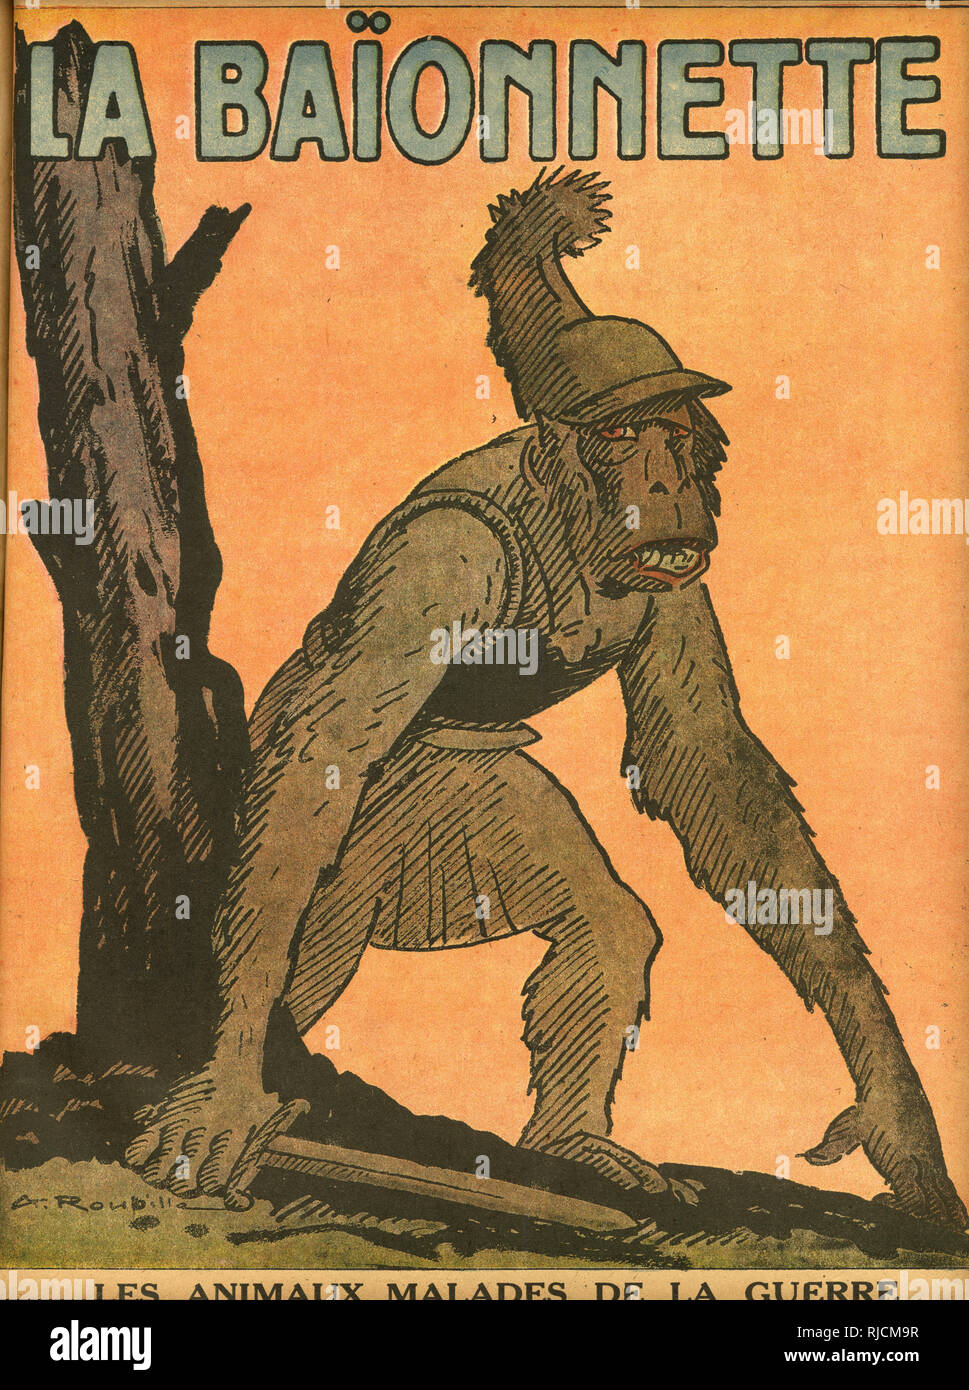 Front cover design for La Baionnette, the sick animals of the war. Showing a monkey dressed as a Roman soldier. - Stock Image